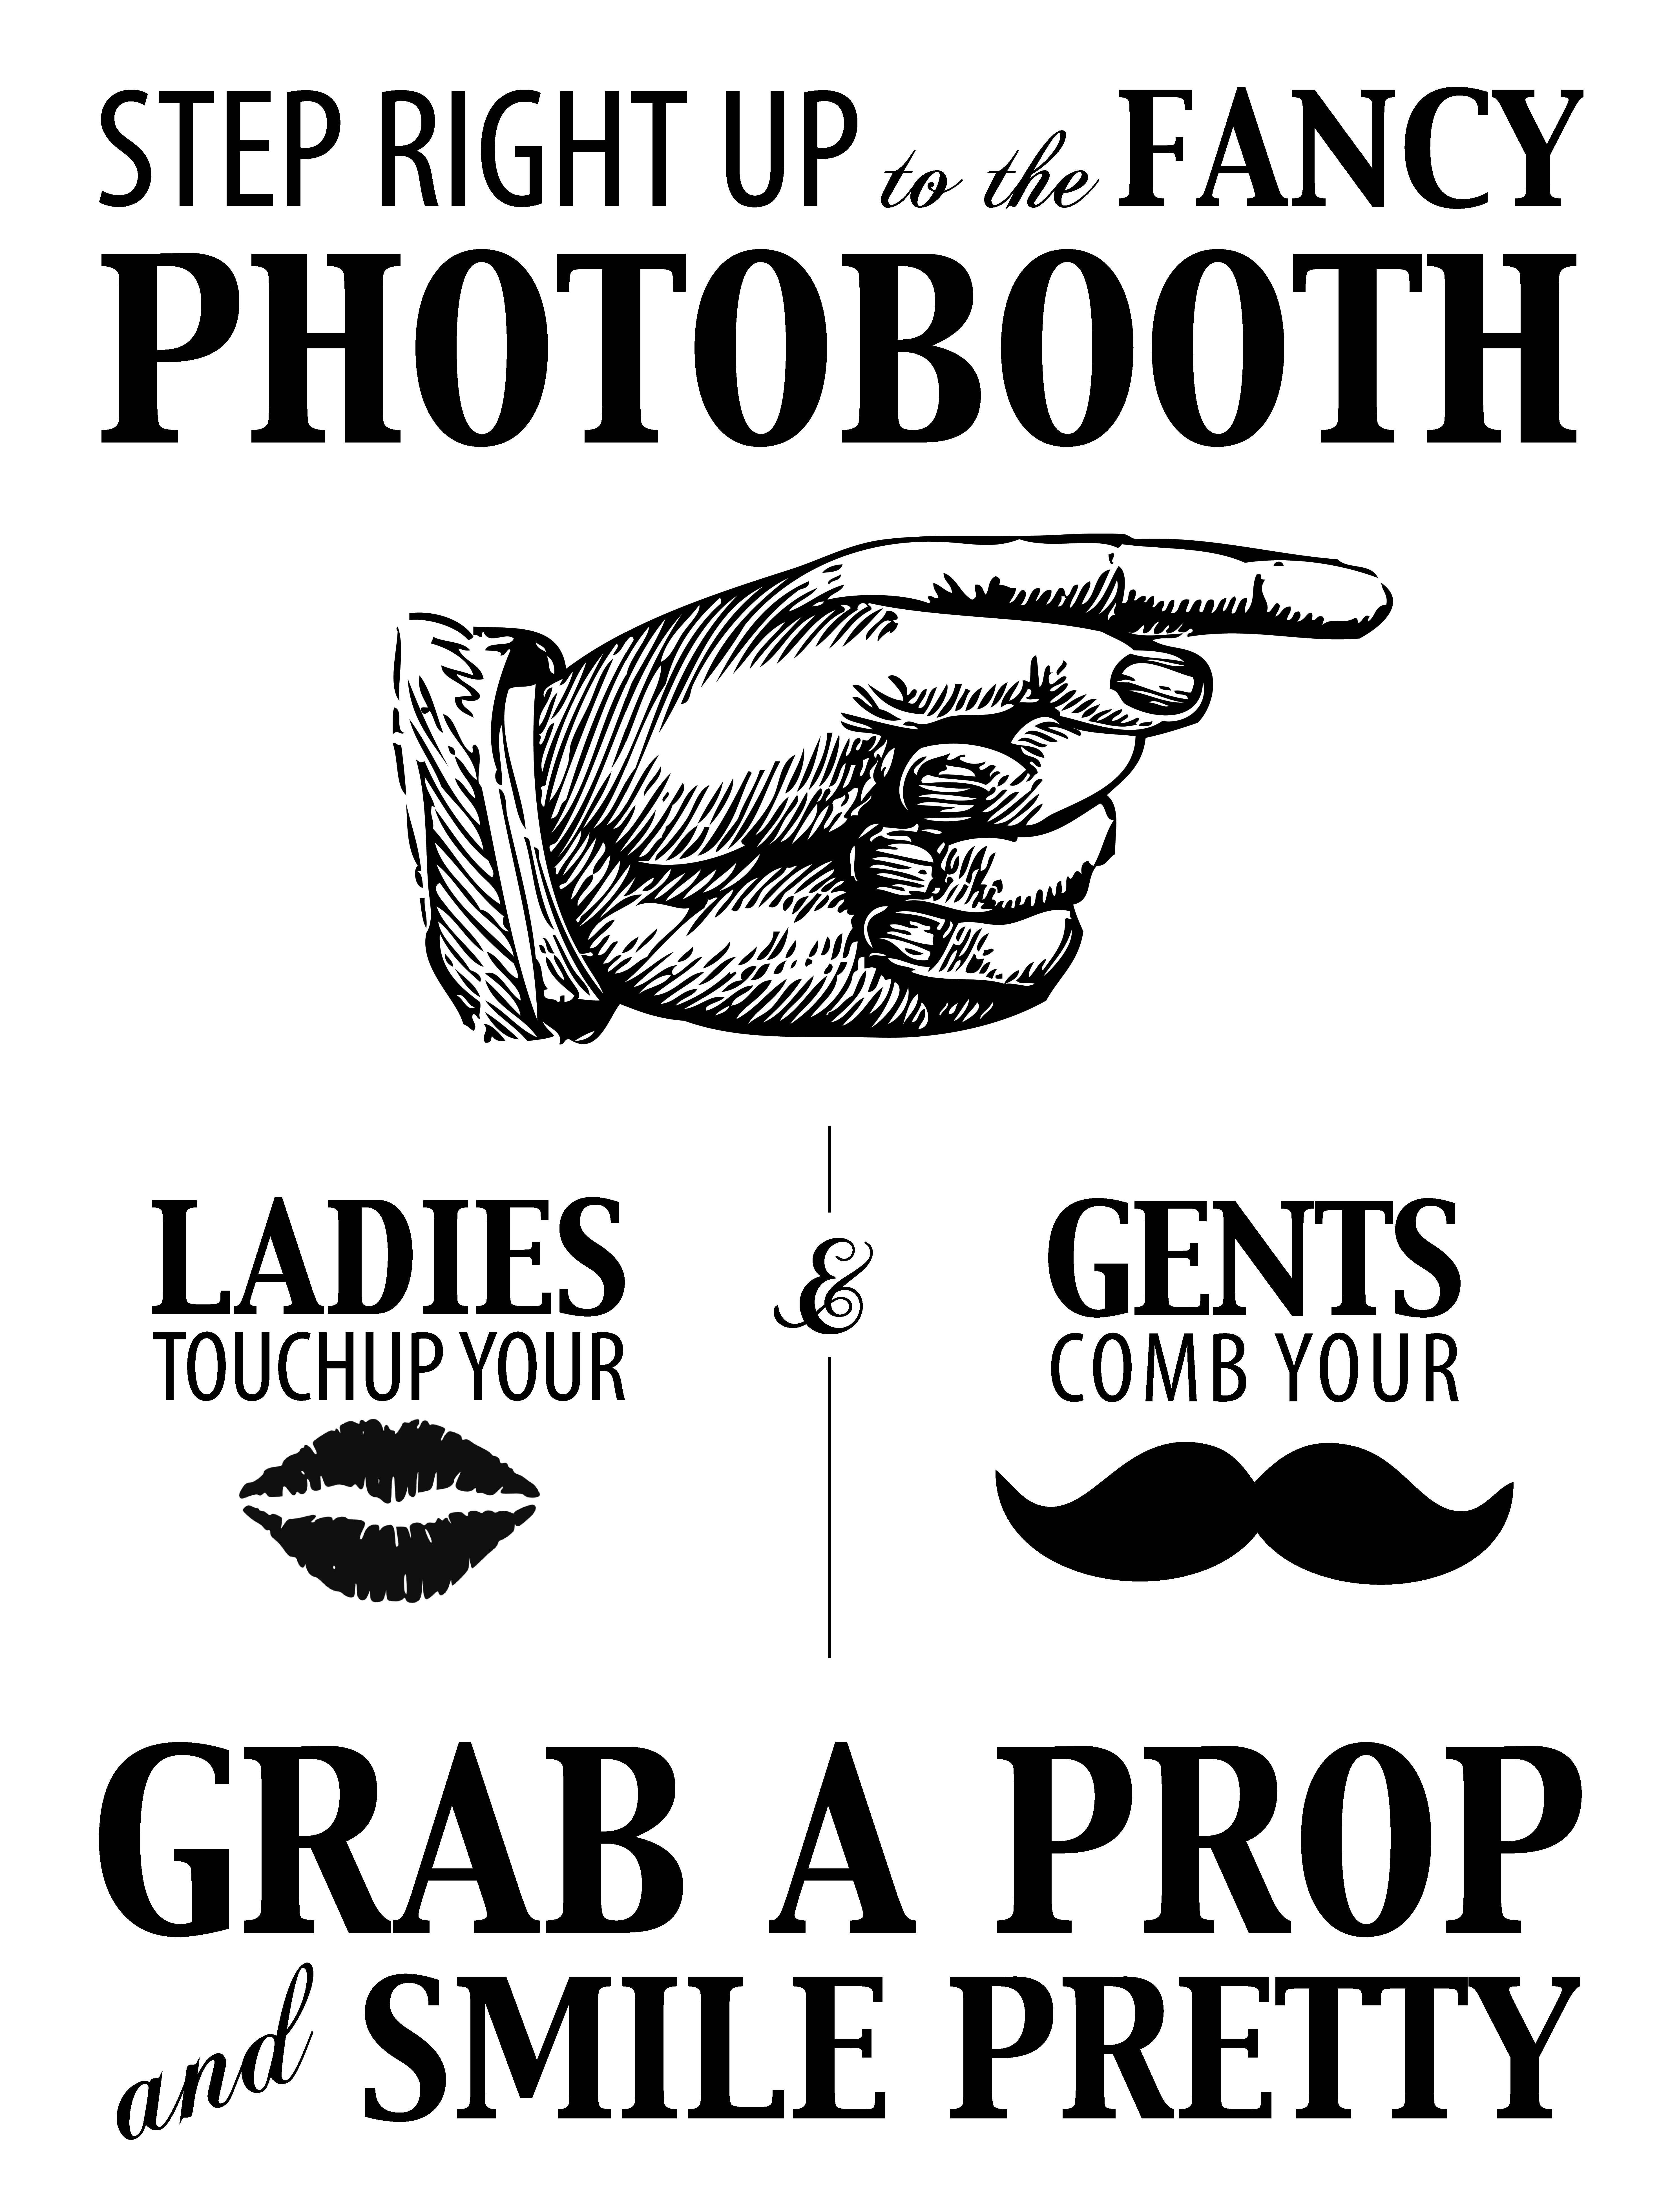 diy photo booth ideas rockabilly party photo booth wedding diy Prohibition Alcohol 1920s photobooth